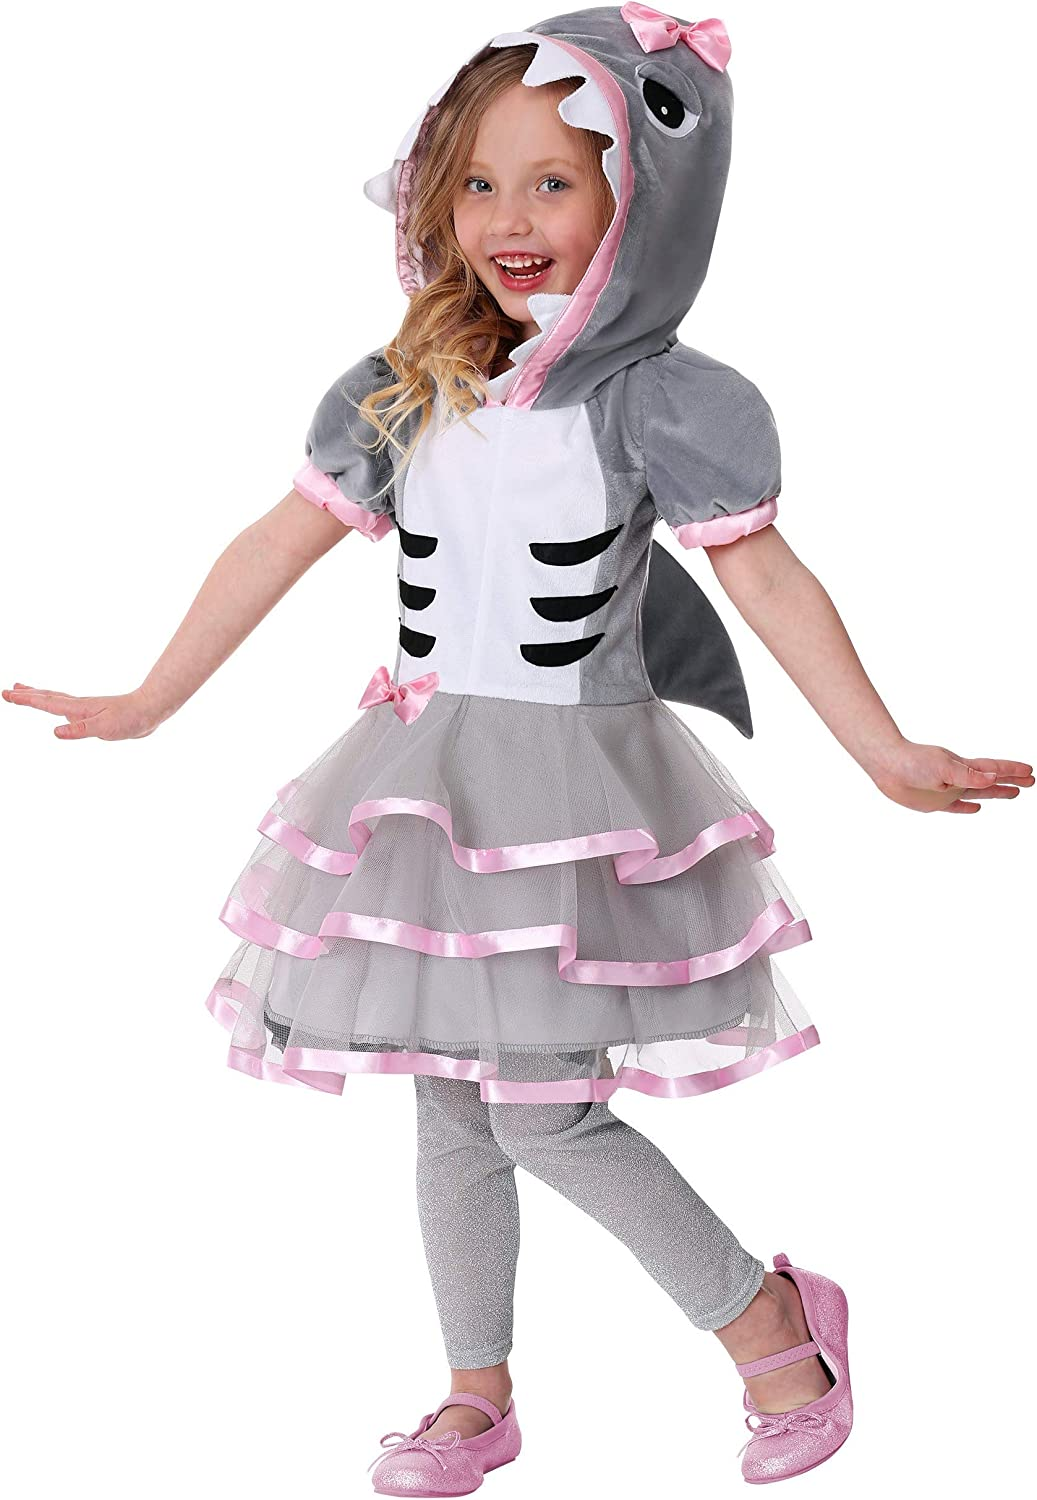 New sales Toddler Girl's Shark Max 84% OFF Sweetie Costume